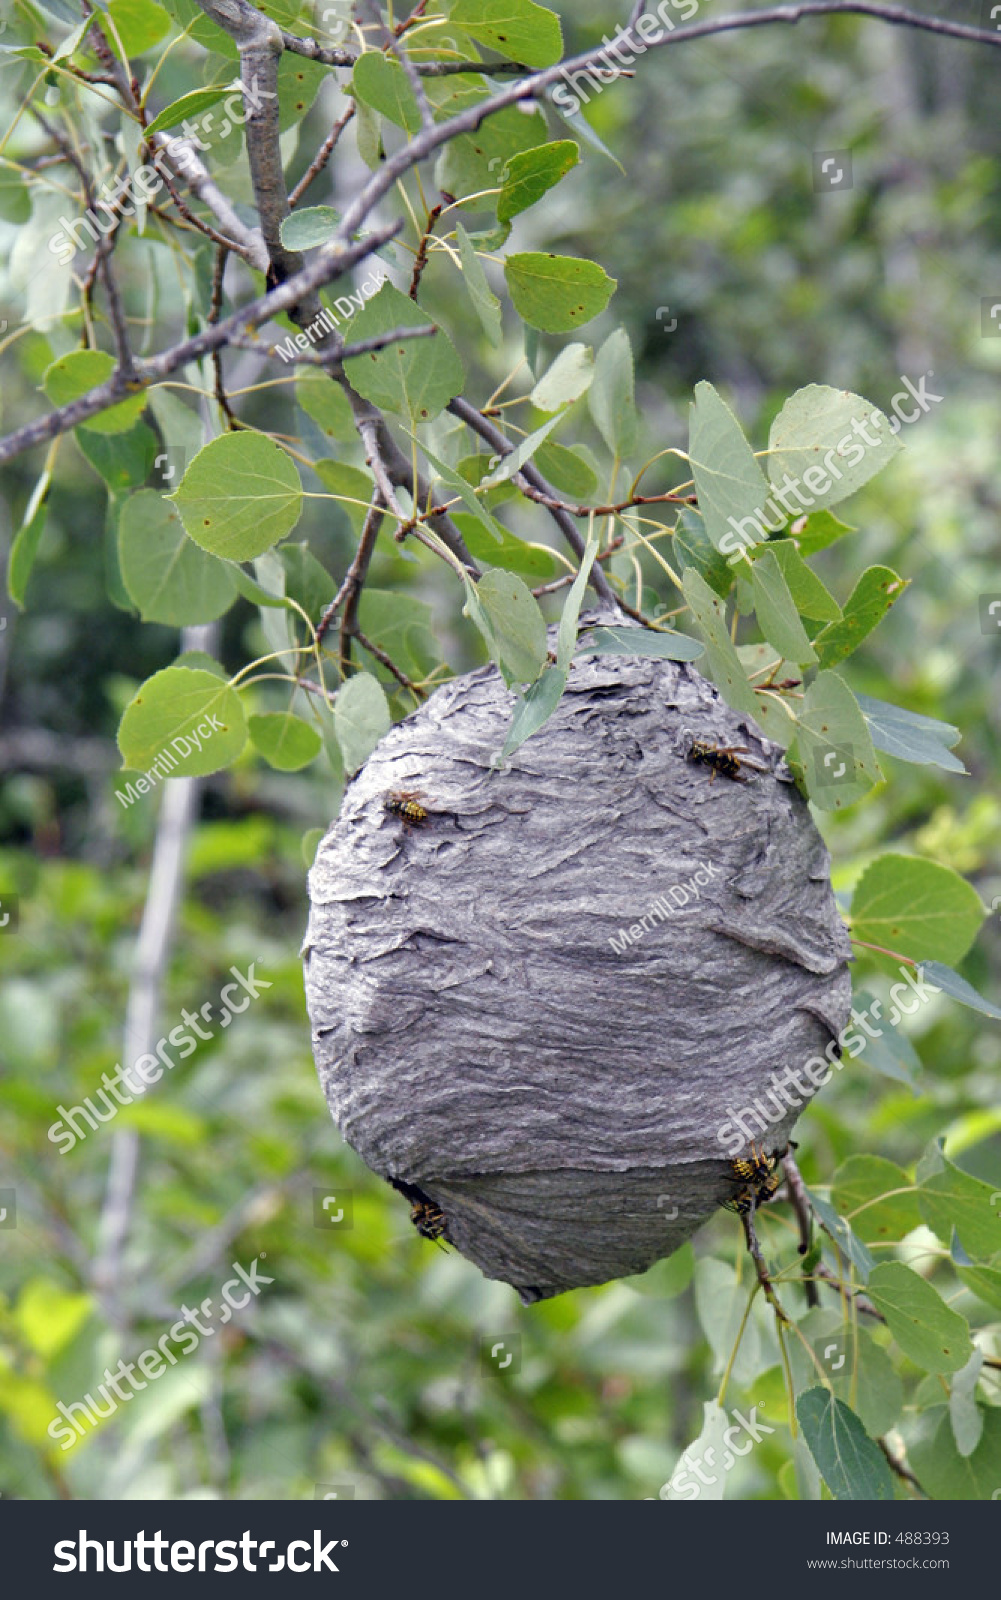 Wasps Nest Tree Stock Photo 488393 - Shutterstock